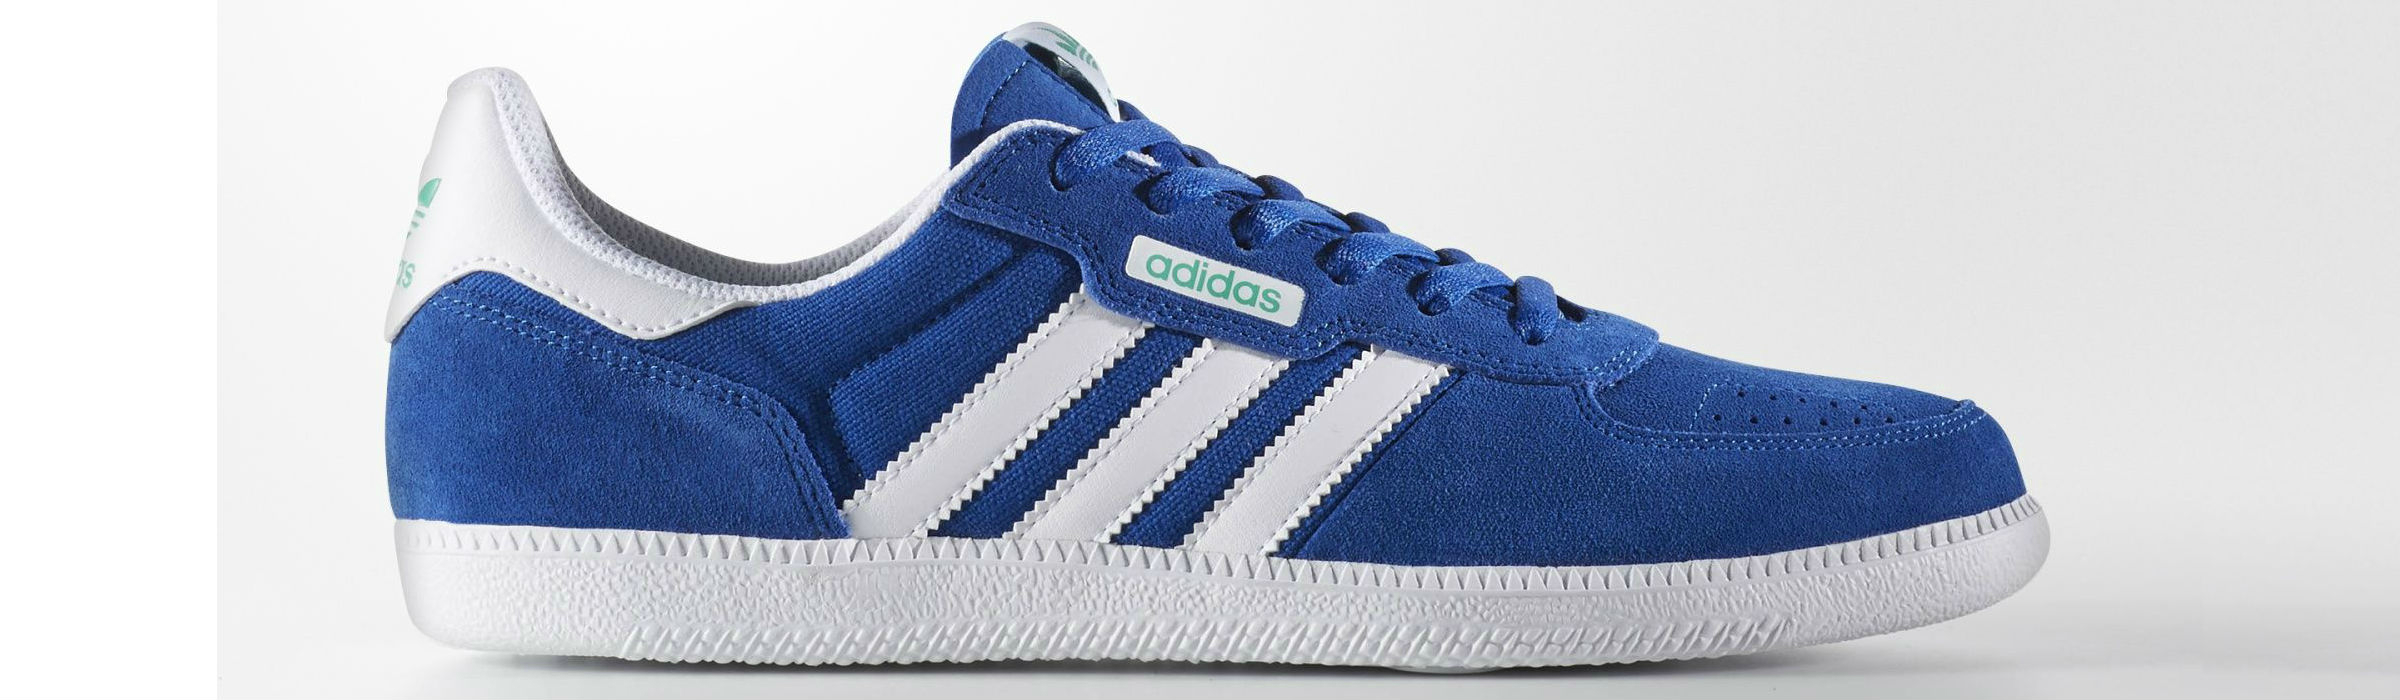 Adidas Leonero Shoes Collegiate Royal Footwear White Core Green Full